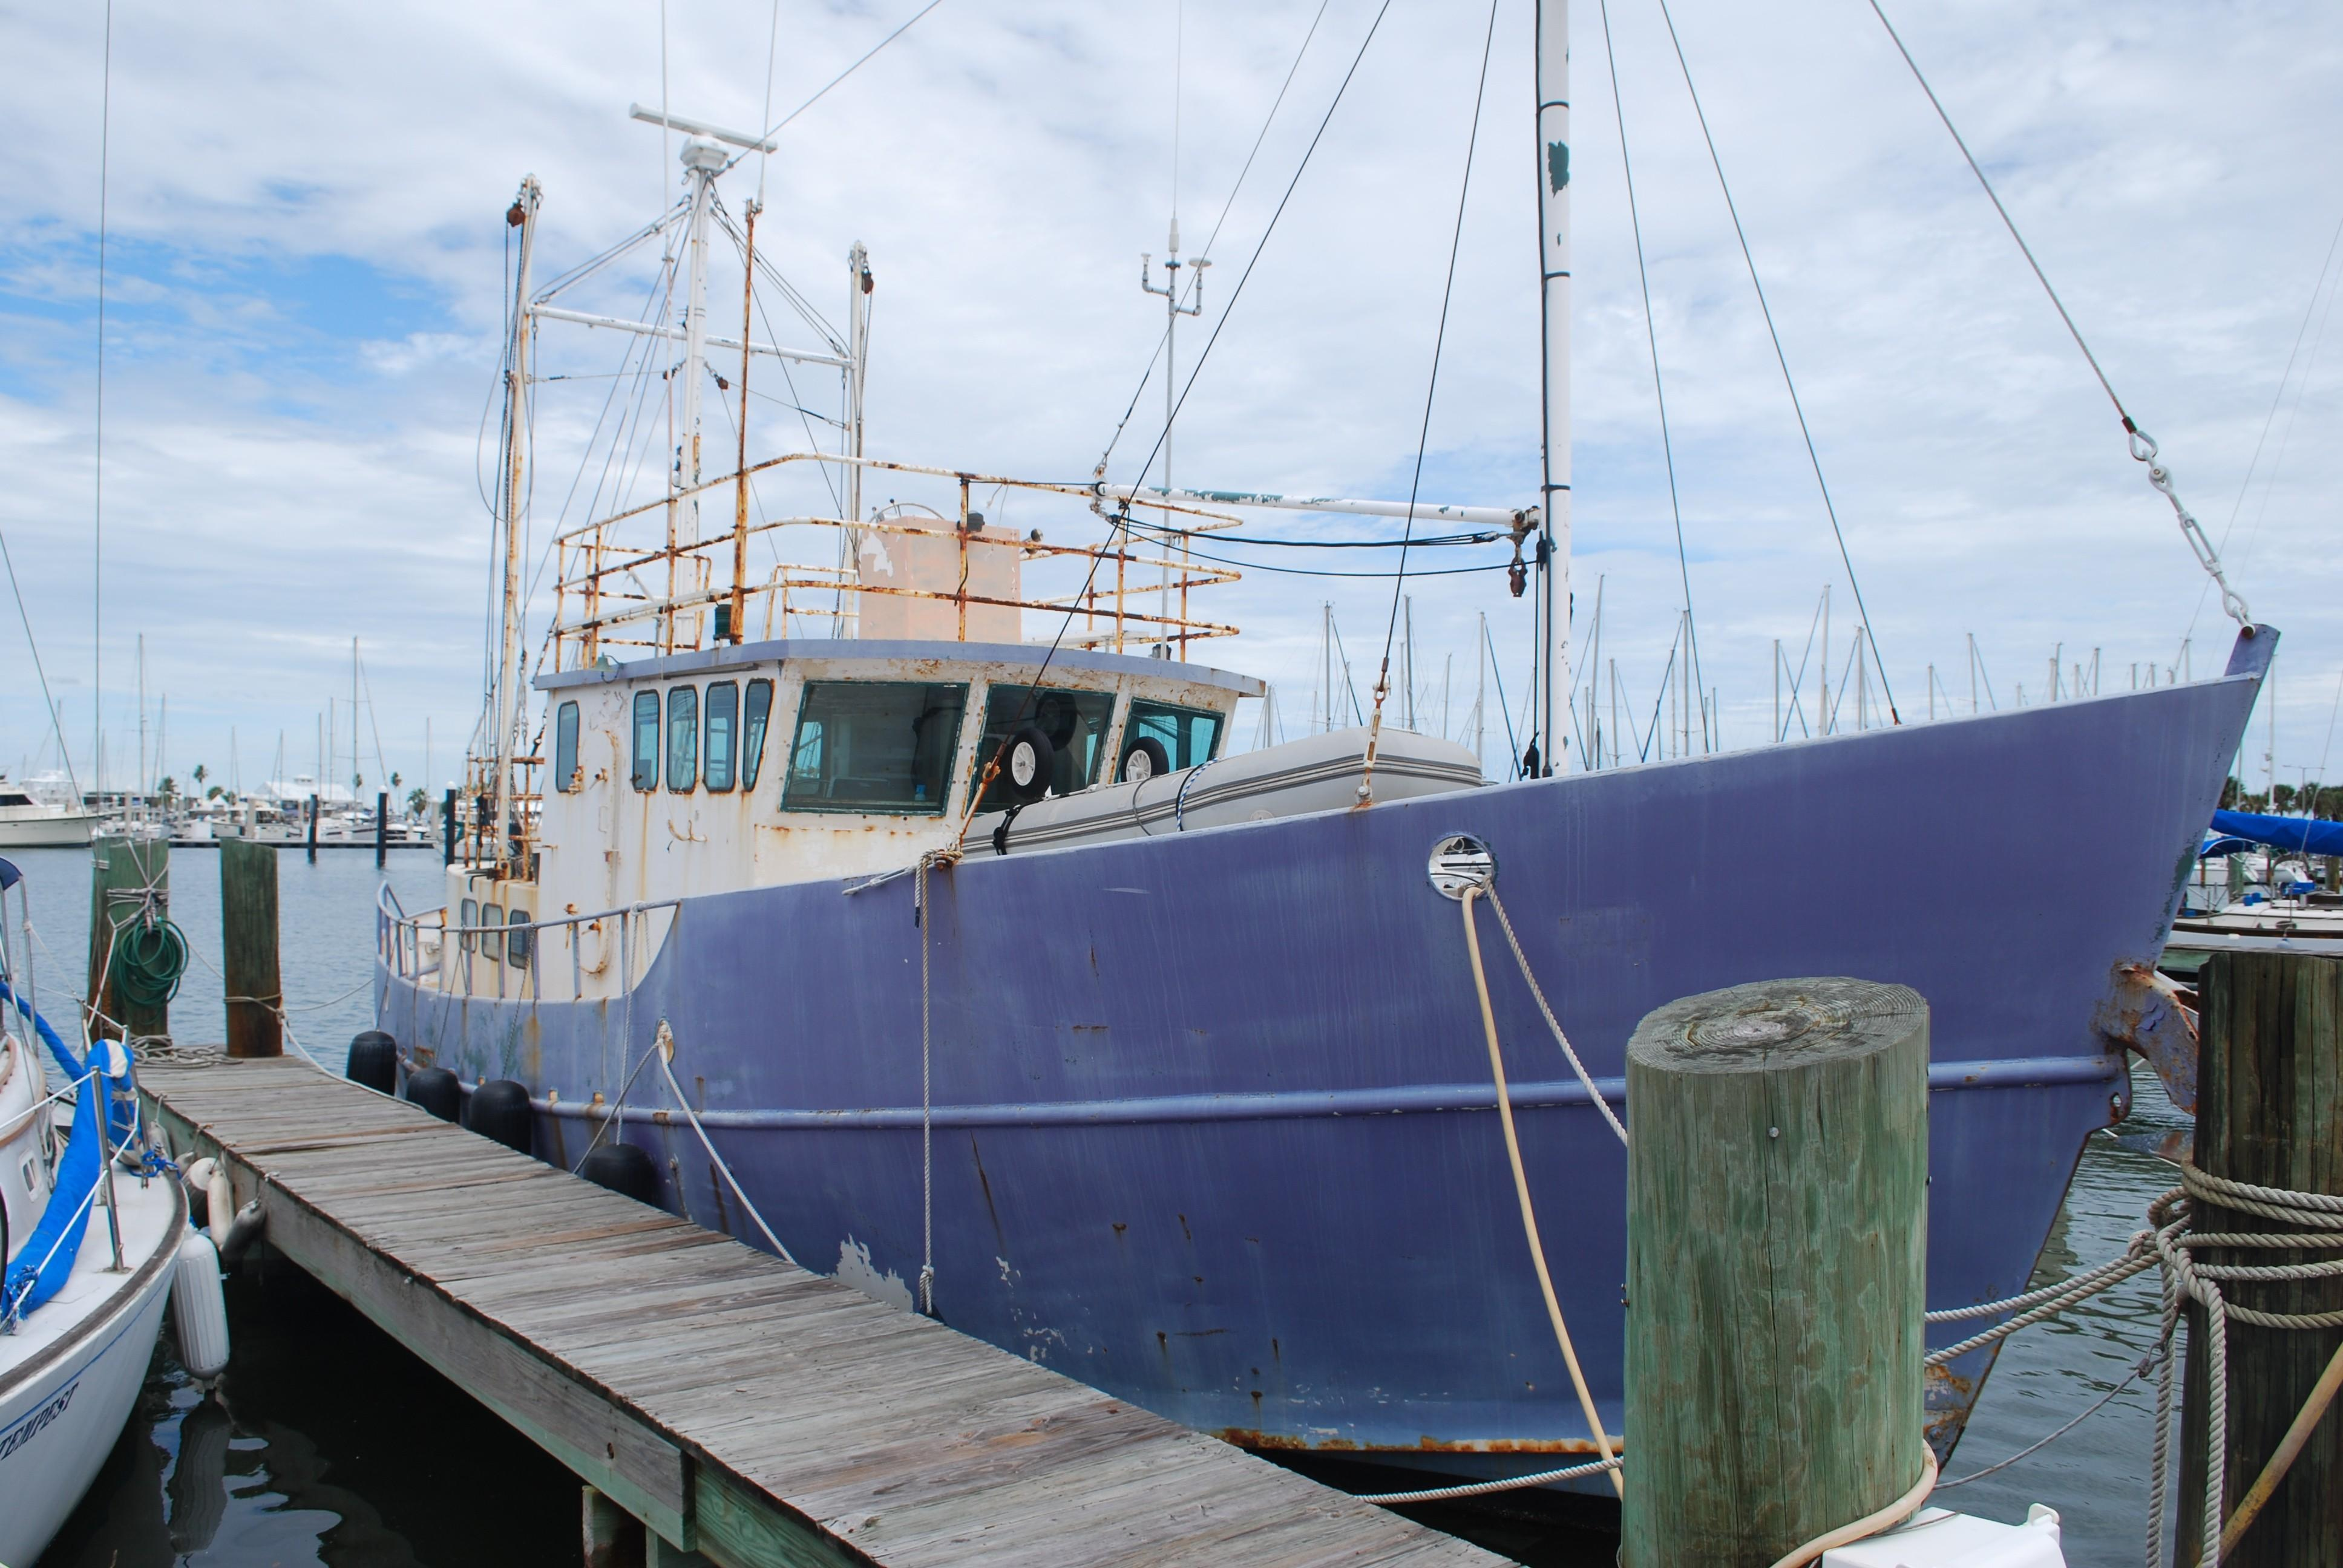 colvin tom designed - fazzio built - north sea trawler for sale in united states of america for 68 500 55 529